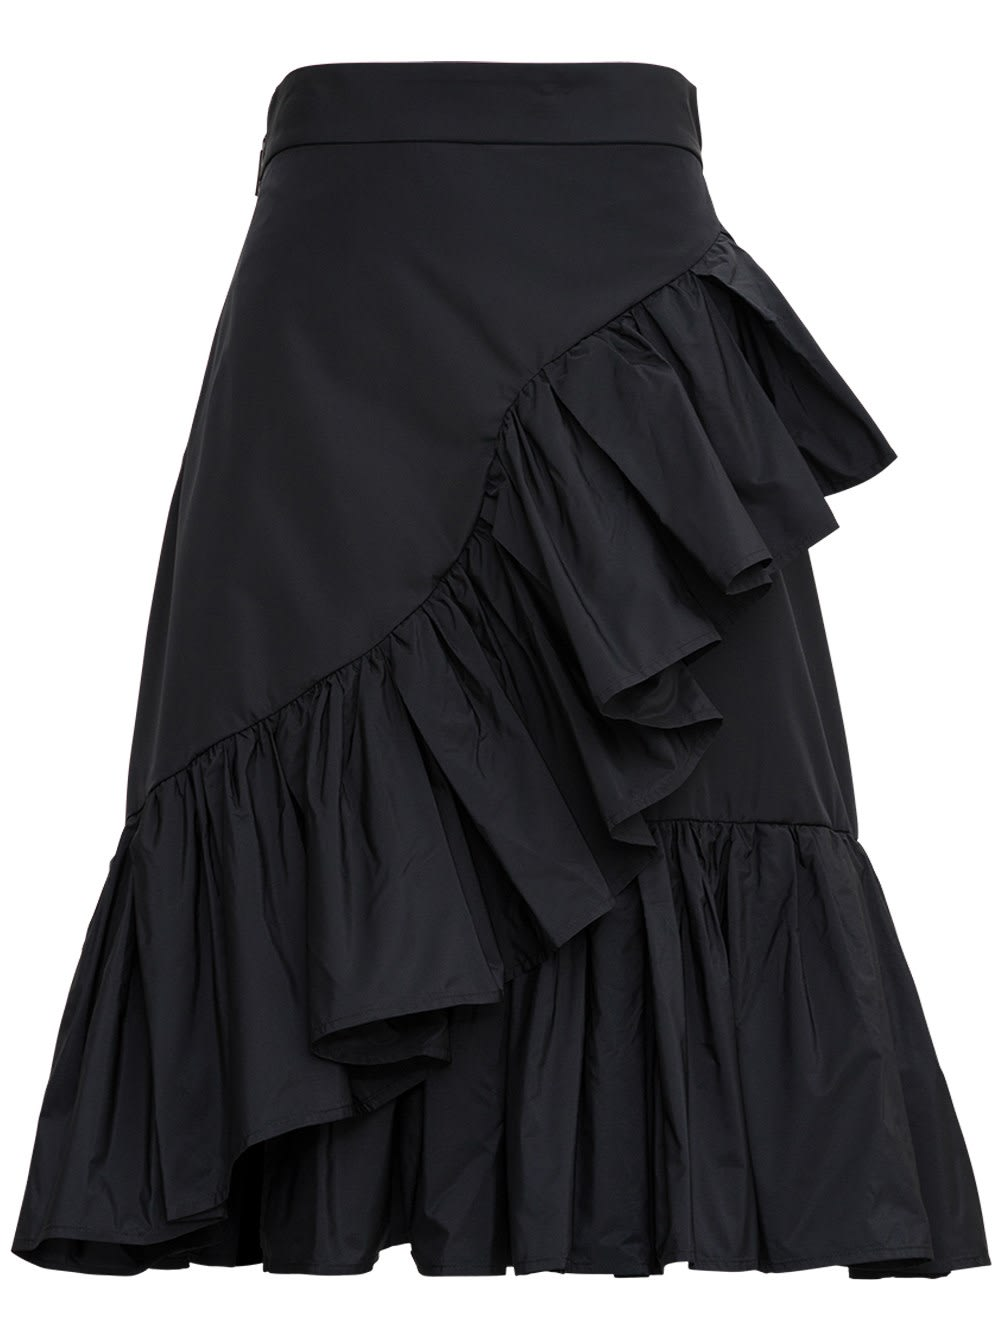 Msgm Cottons BLACK SKIRT WITH RUFFLE DETAIL